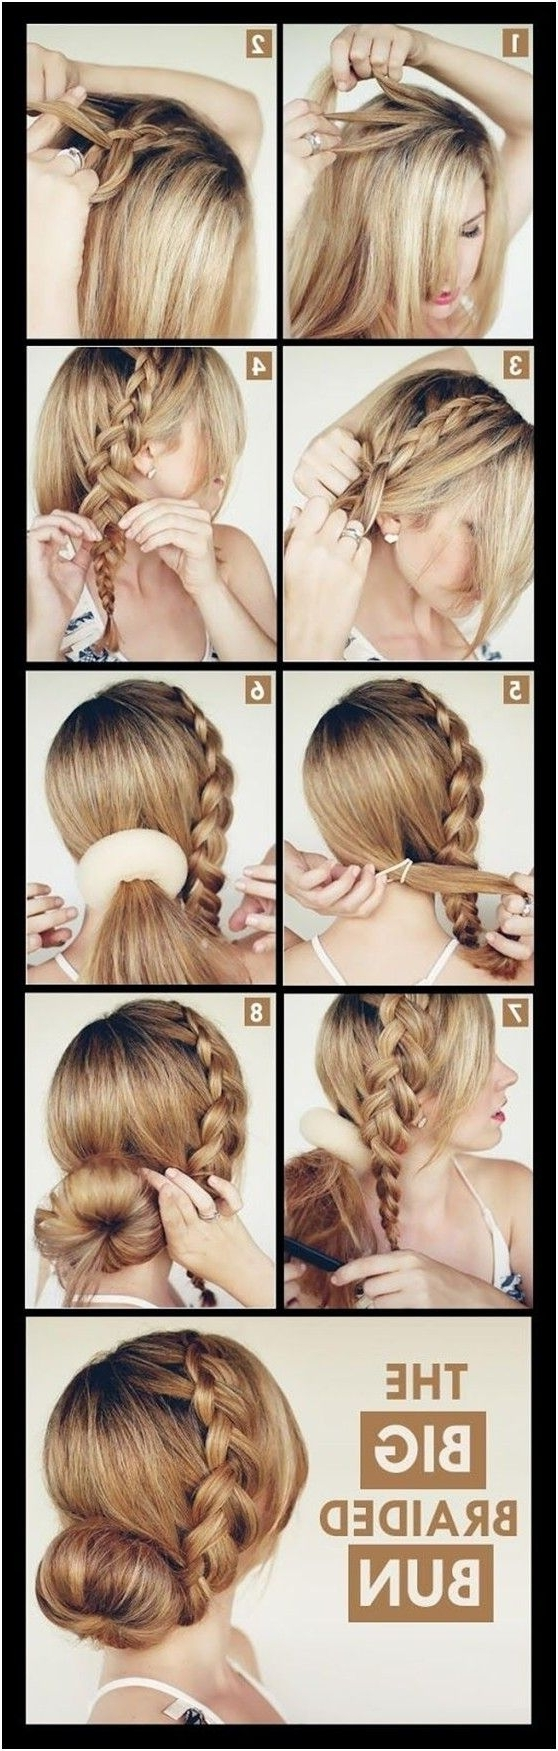 15 Braided Updo Hairstyles Tutorials (View 10 of 15)